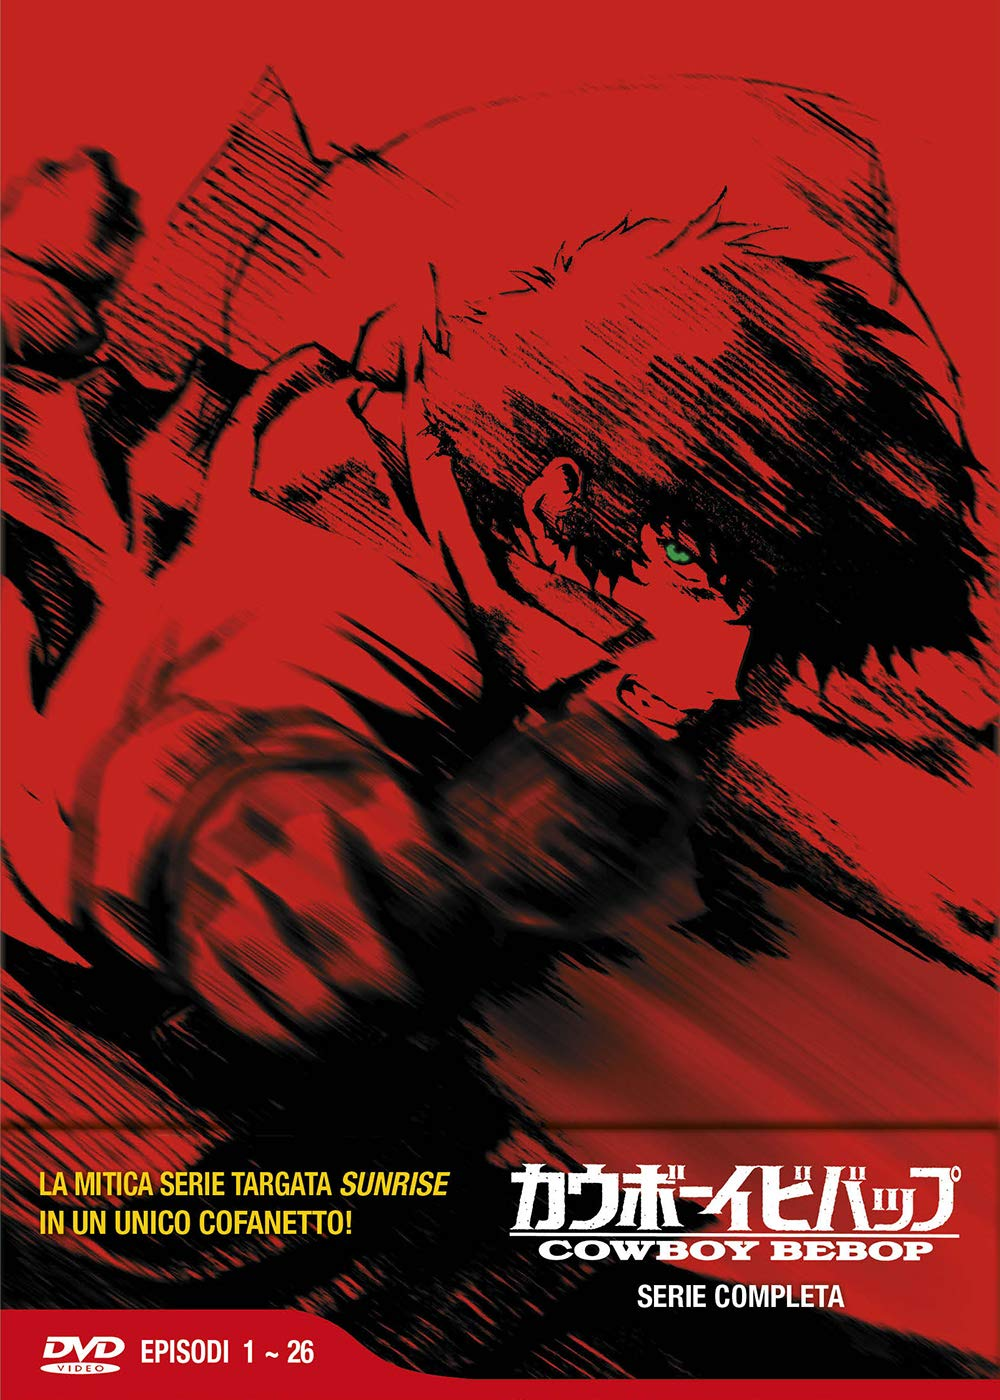 COF.COWBOY BEBOP - THE COMPLETE SERIES (EPS 01-26) (4 DVD) (DVD)